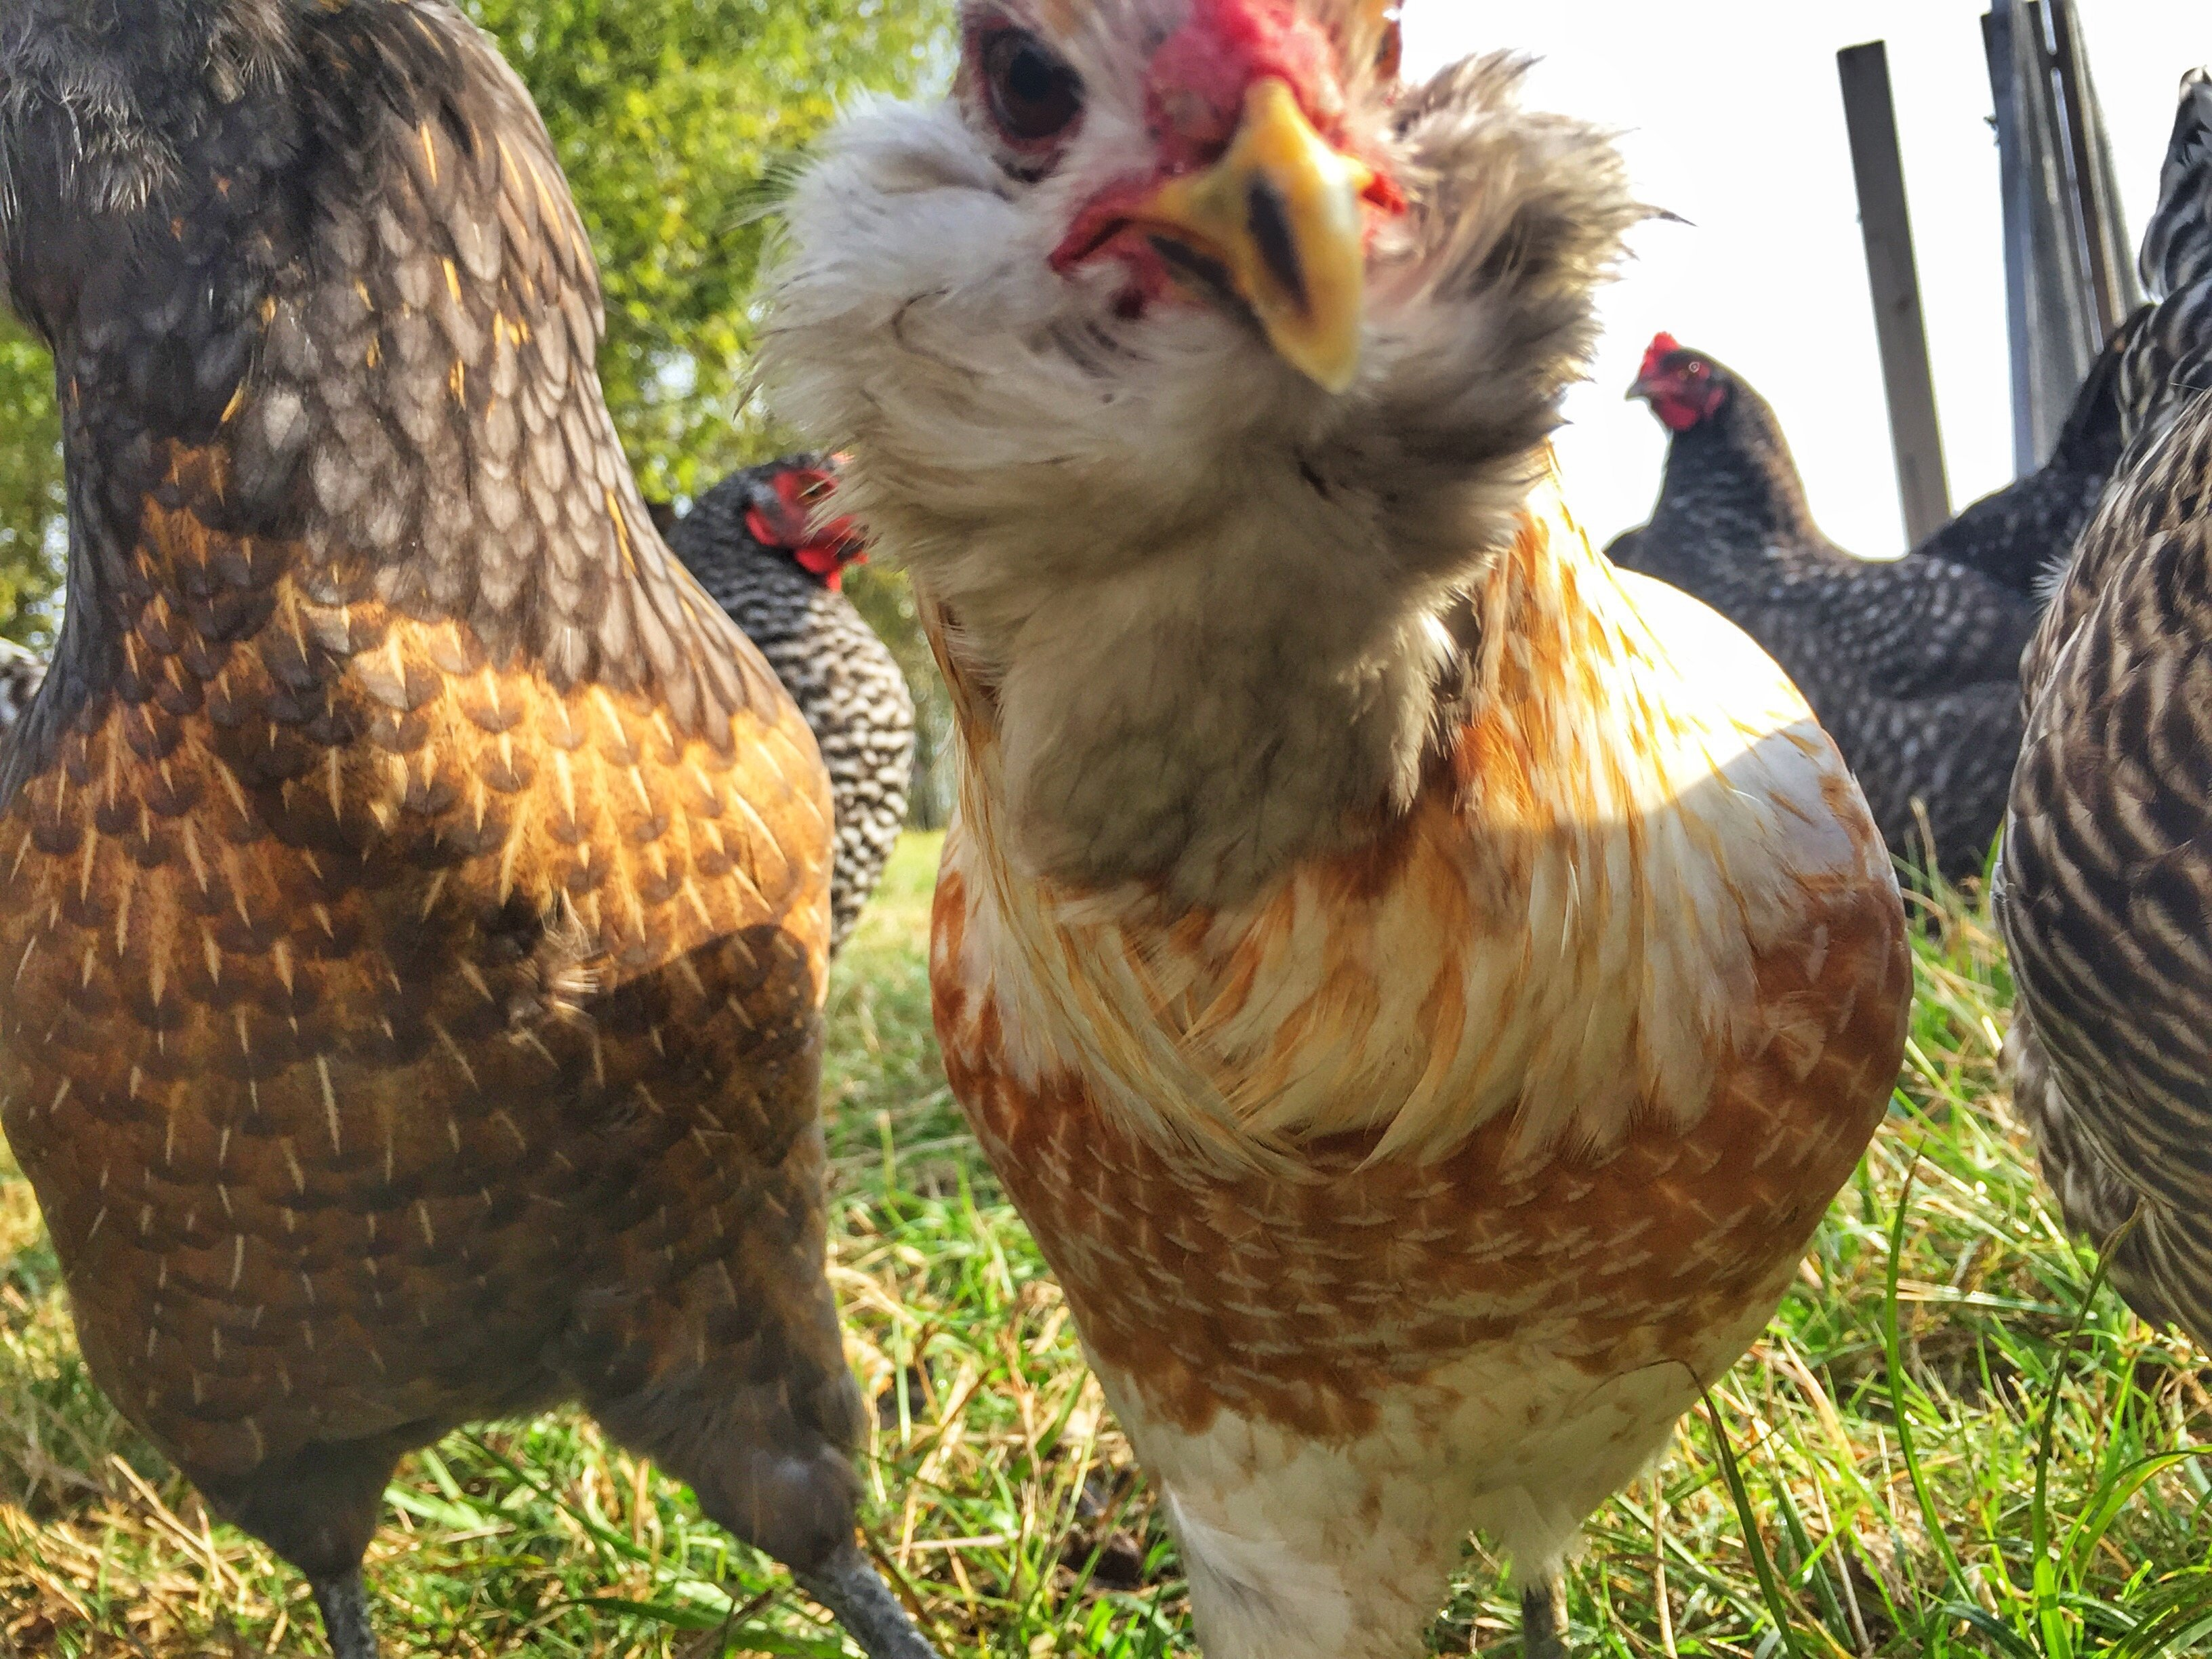 Keeping Chickens – It's All About Small Victories